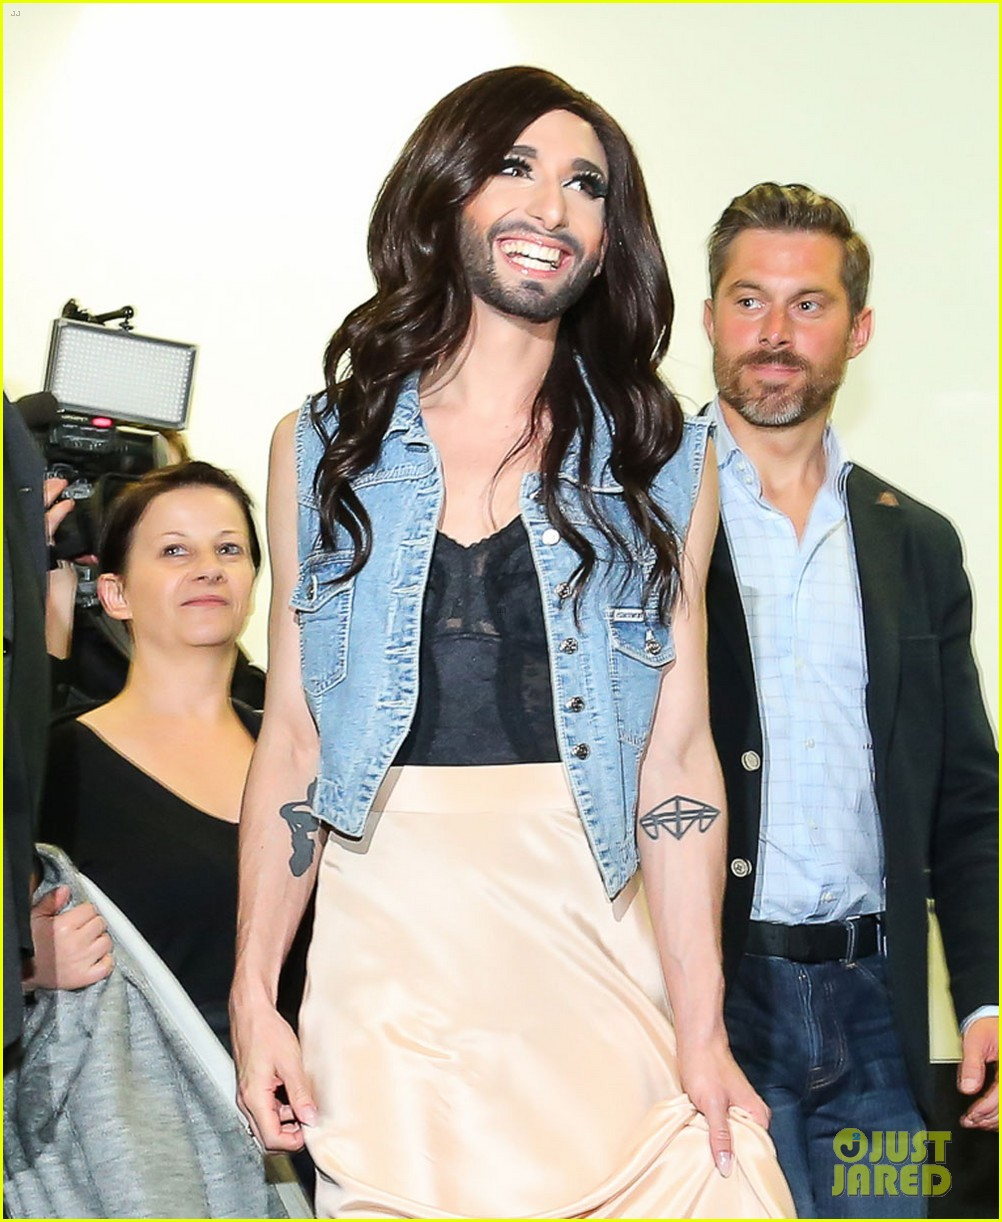 conchita wurst greeted by fans in austria after eurovision win 02